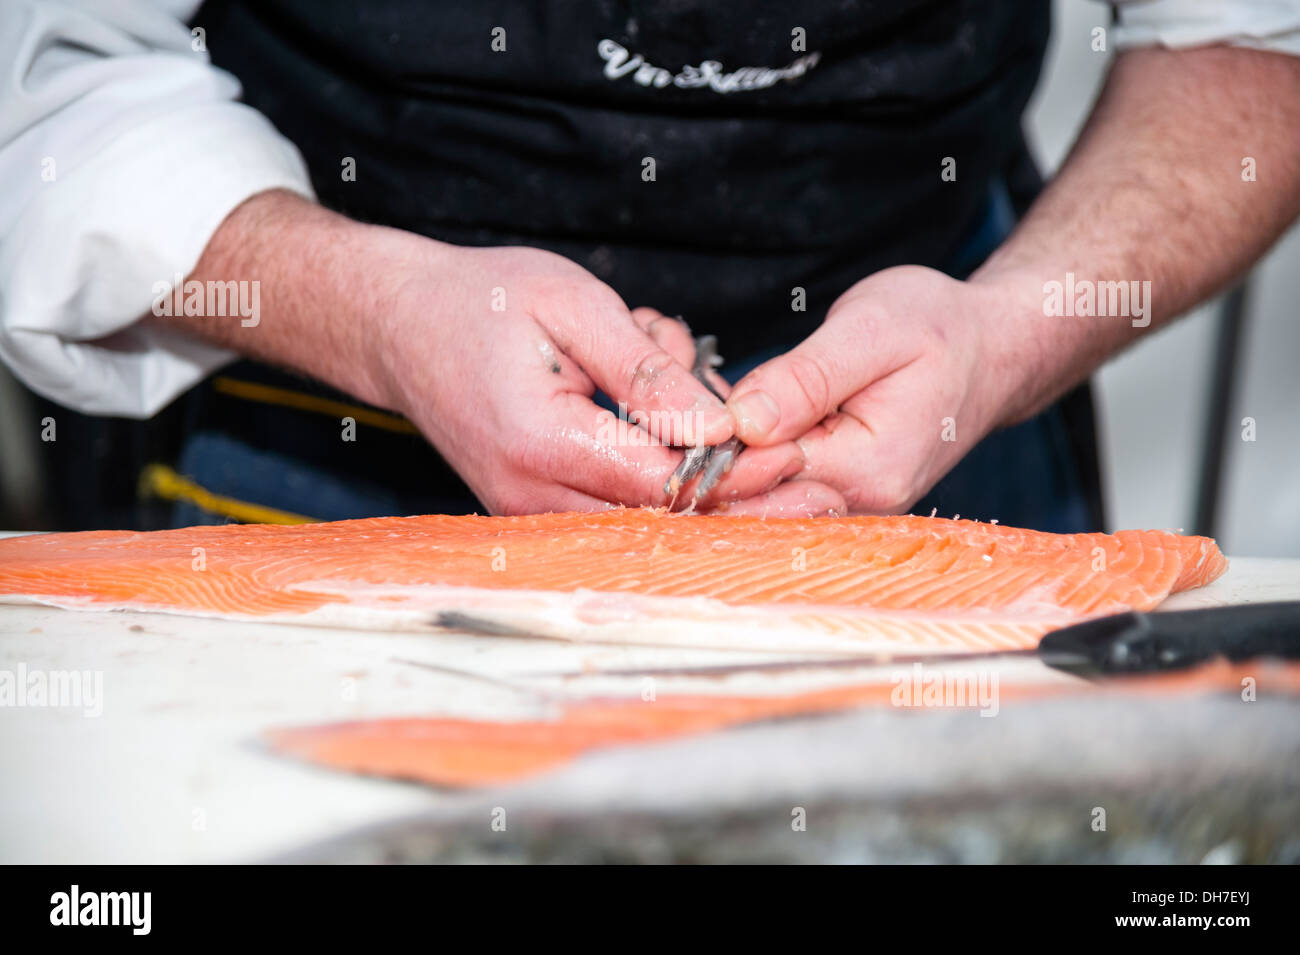 Fishmonger de-boning a salmon fillet with a pair of pliers, UK. - Stock Image